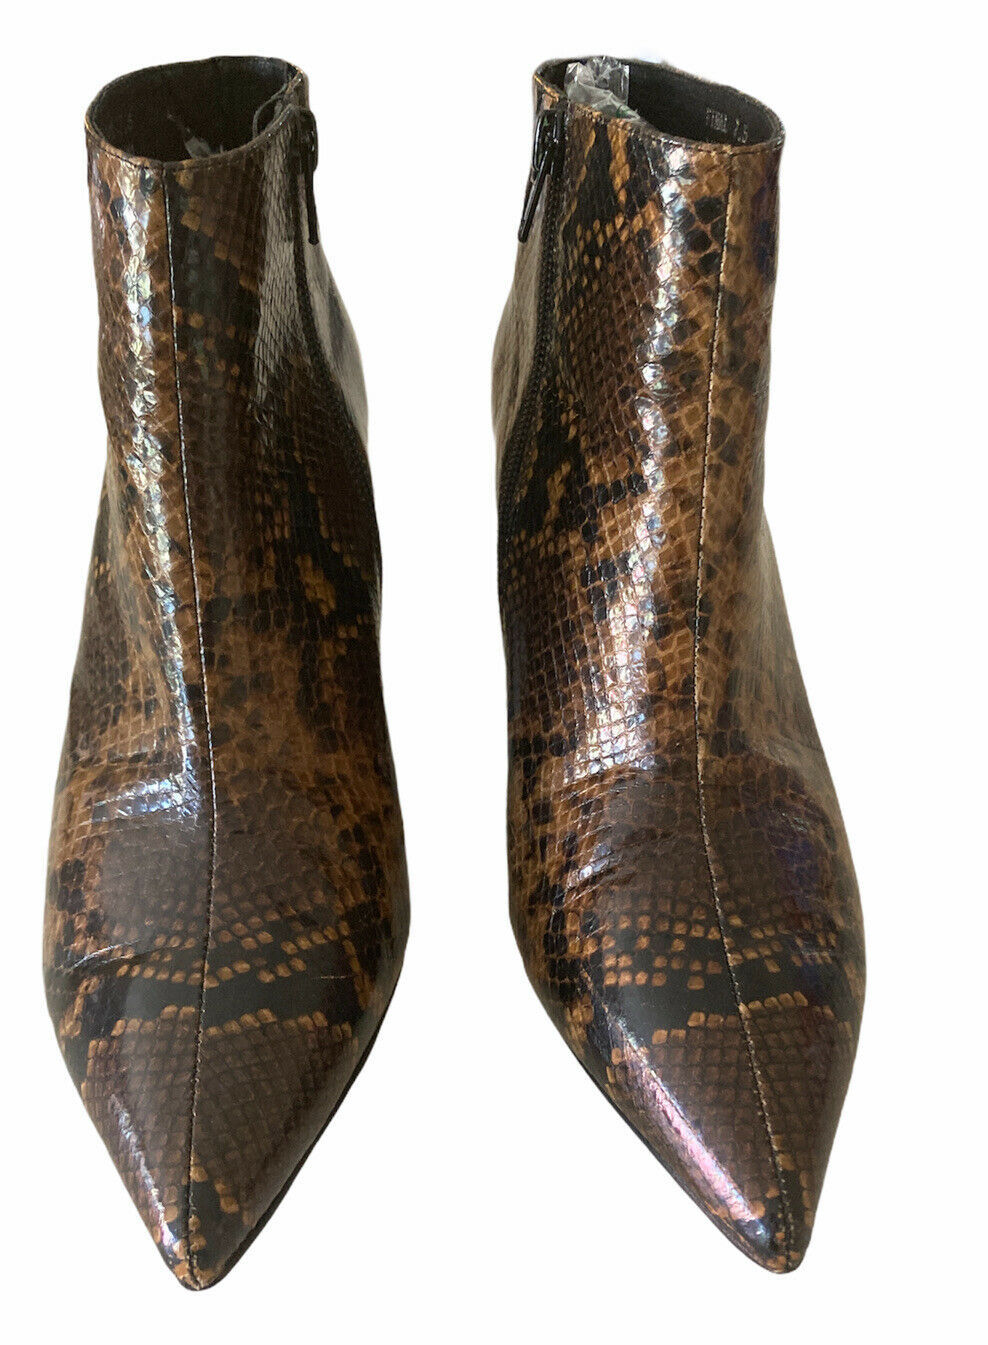 JEFFREY CAMPBELL BROWN LEATHER SNAKESKIN LILLIAN HEEL ANKLE BOOTS BOOTIES Sz 7.5 - $56.06